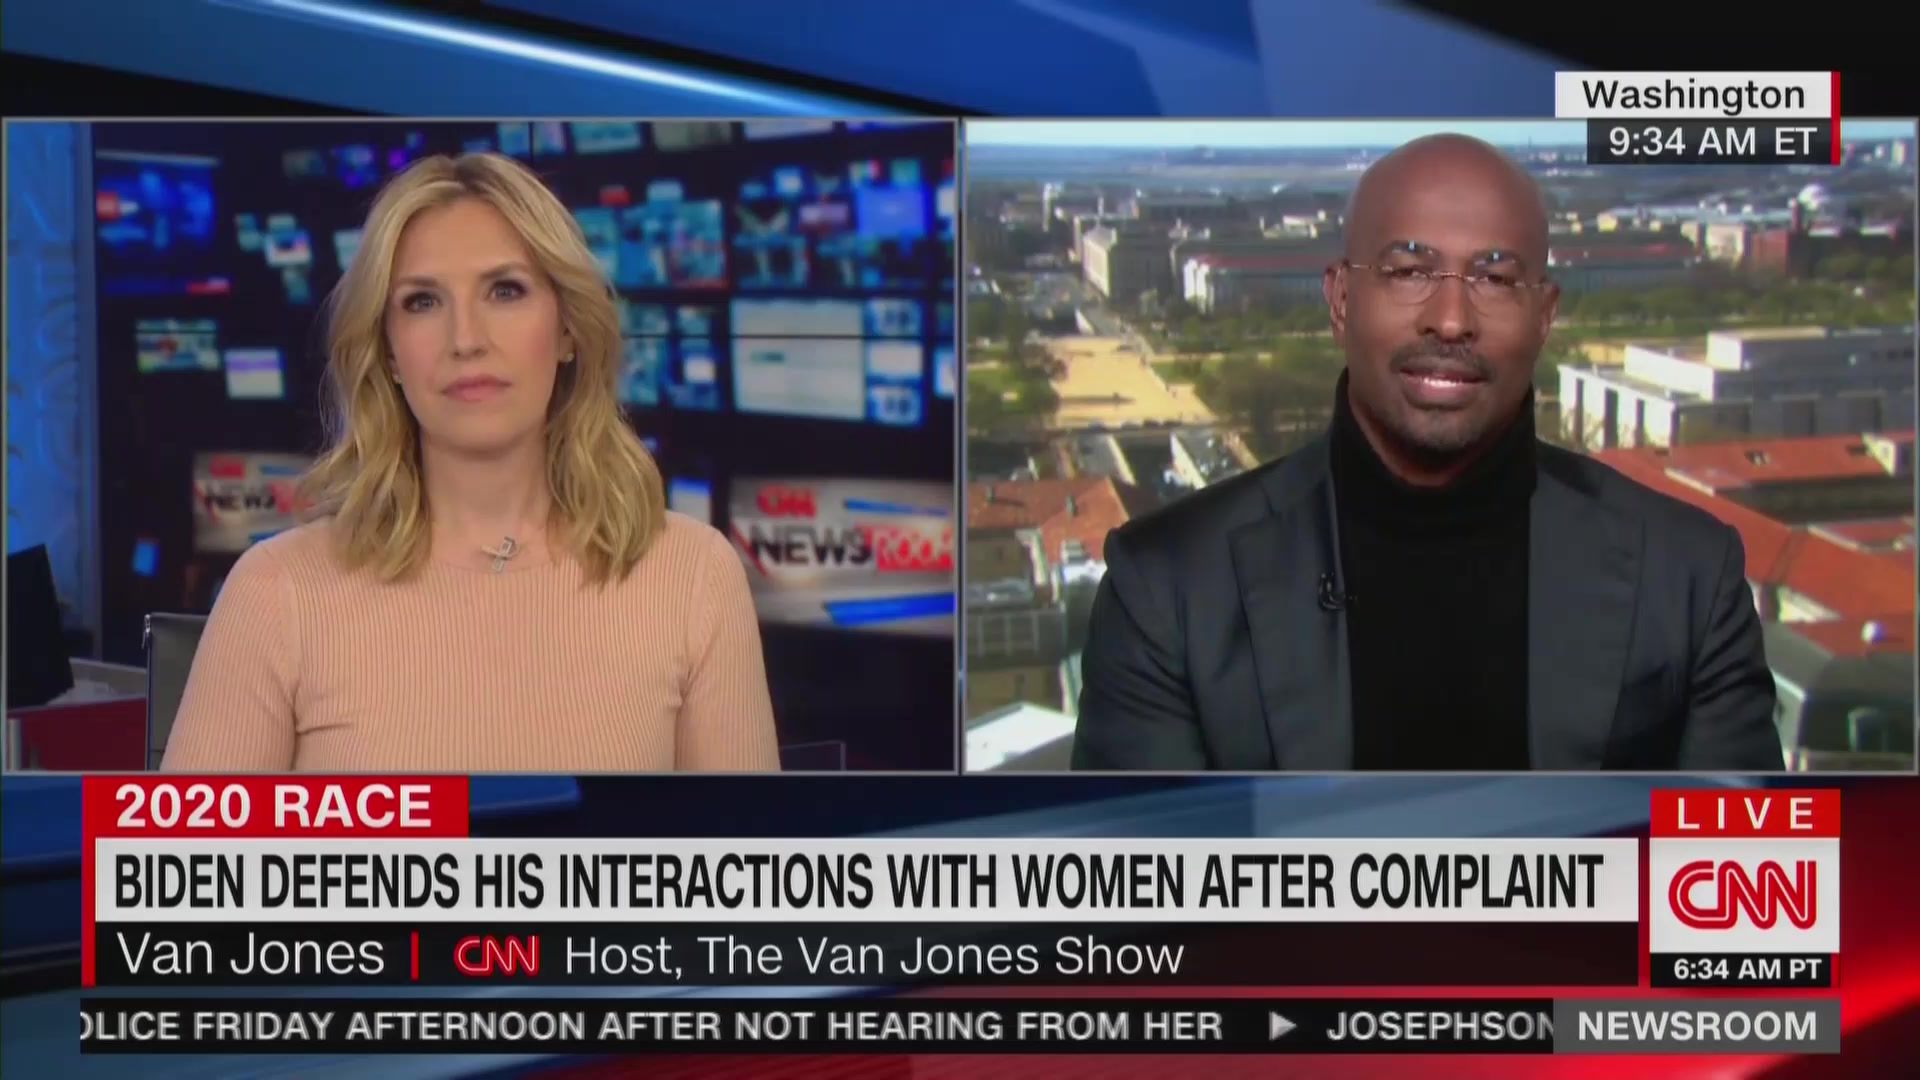 Van Jones on Lucy Flores Allegation: 'Old School' Joe Biden Is 'Very Much a Hands-On Guy'